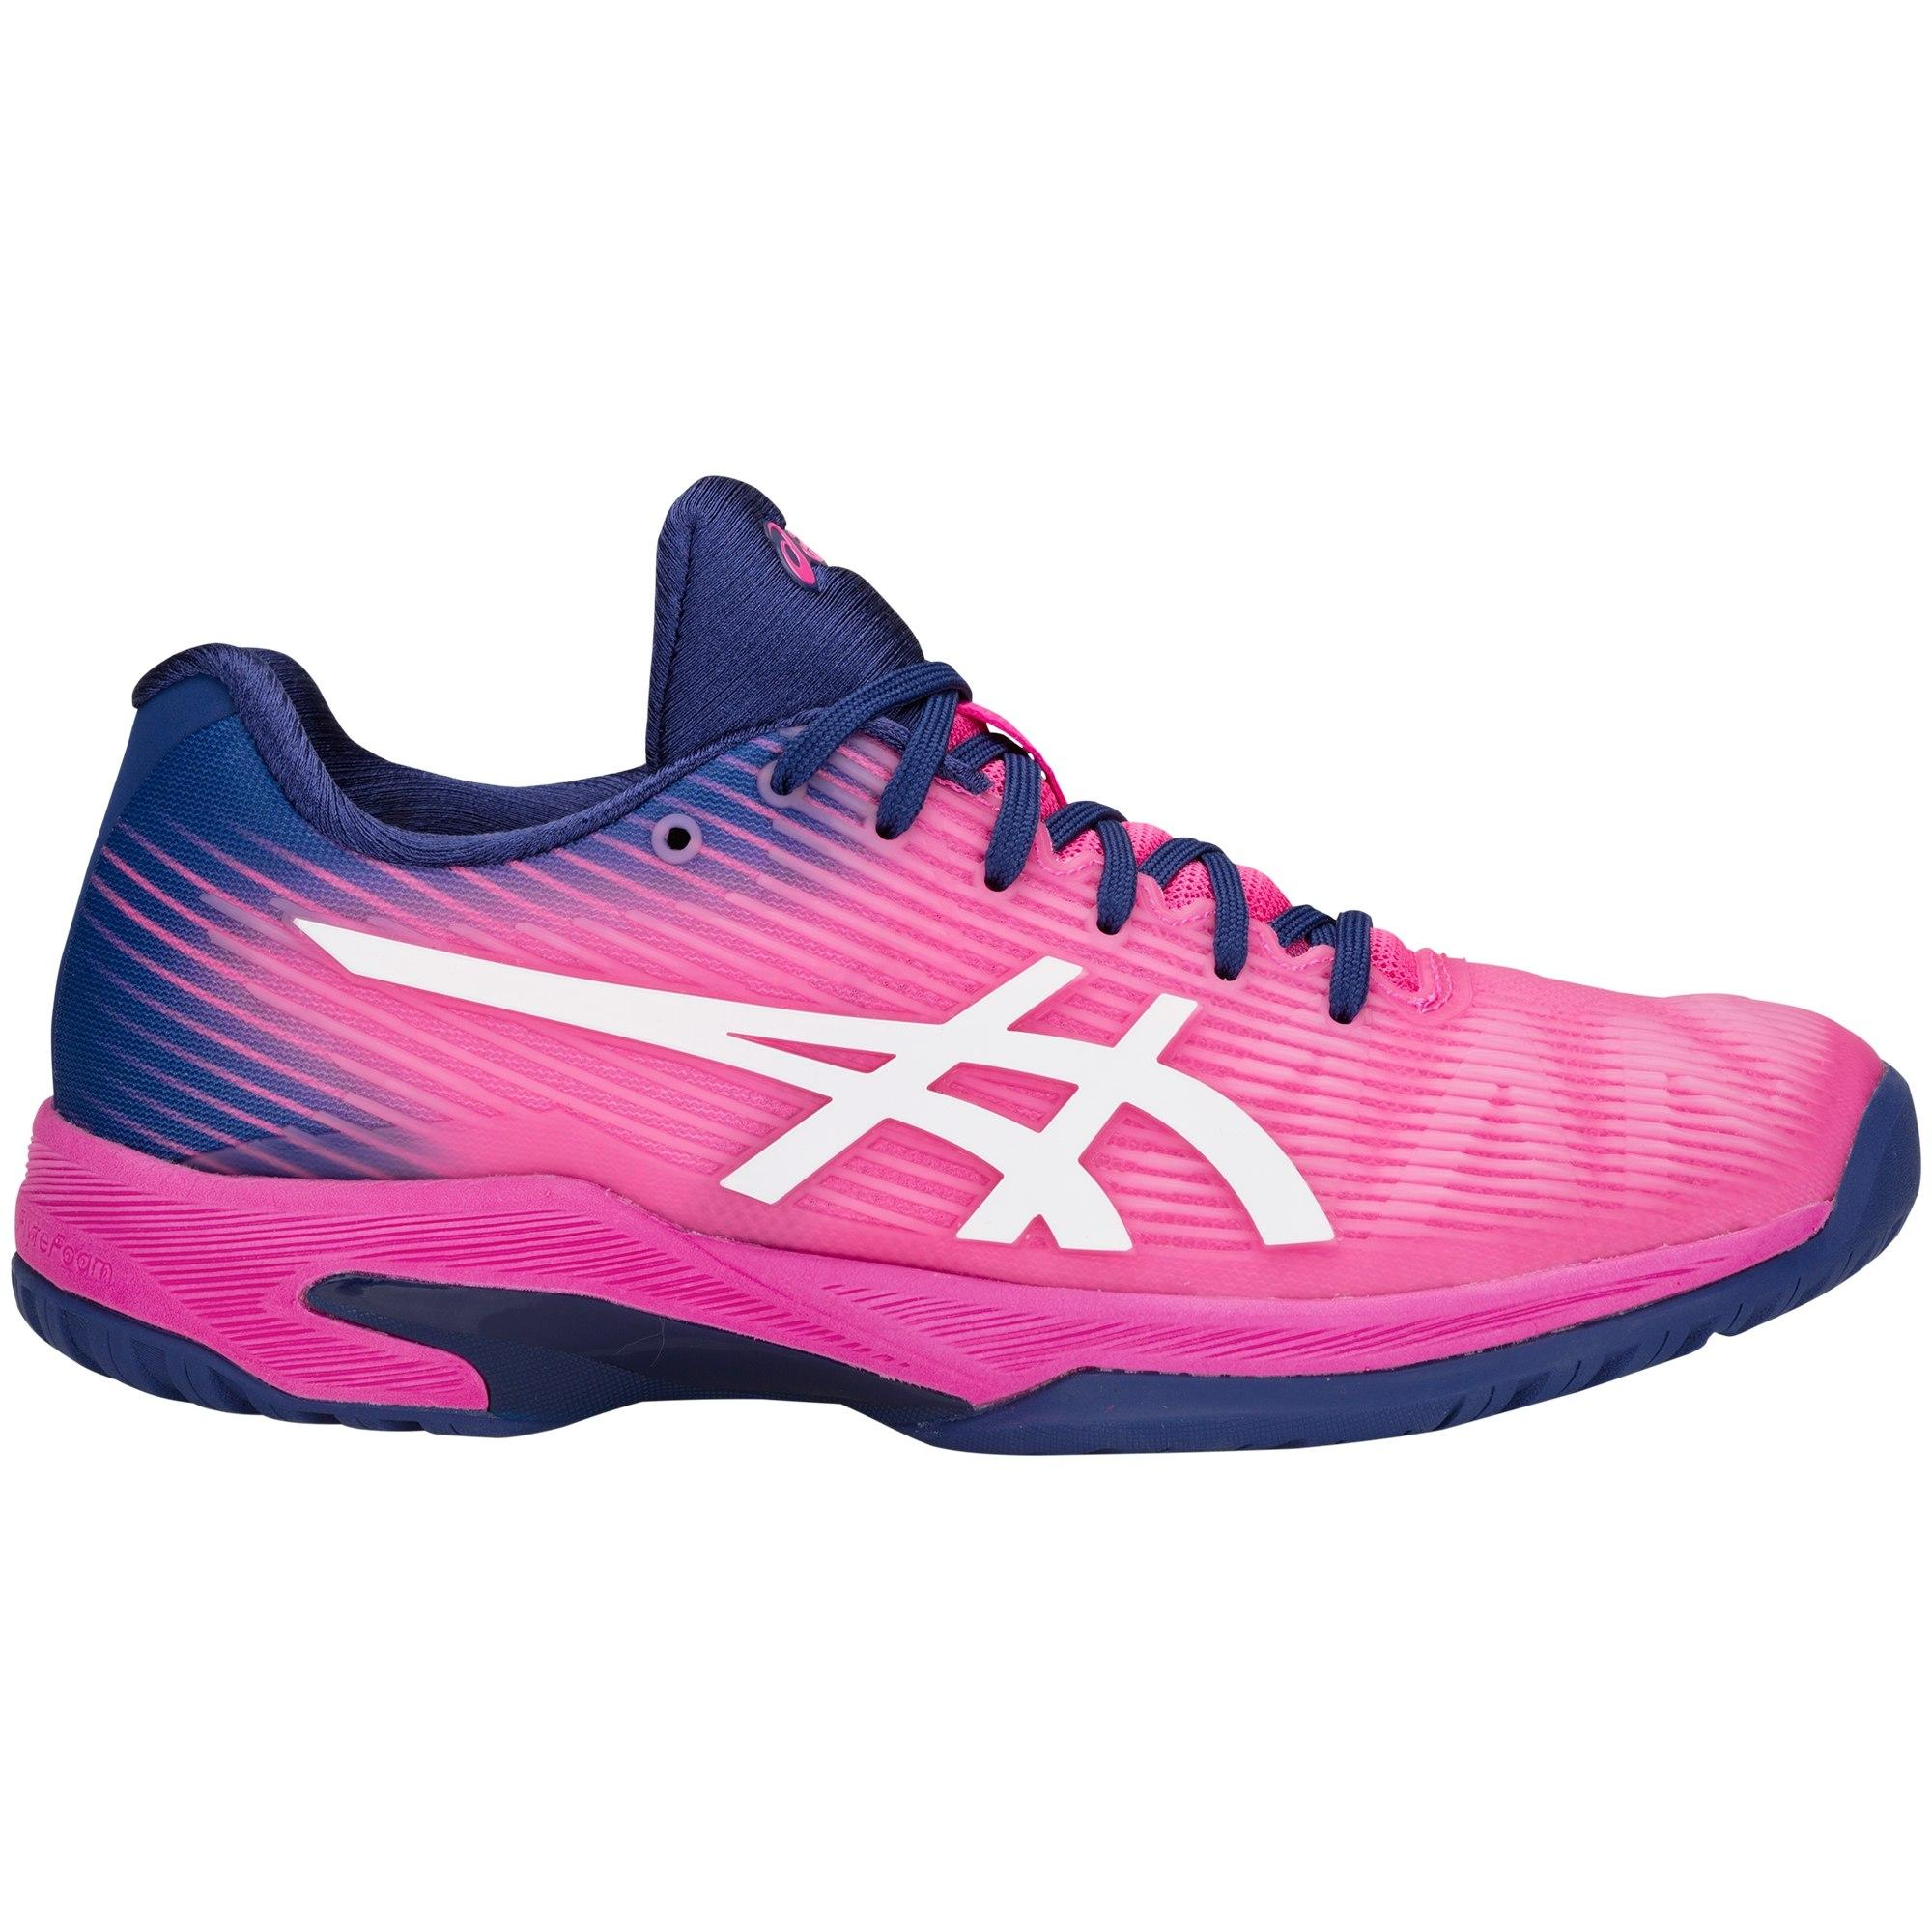 30e99669cc5 Asics Womens Solution Speed FF Tennis Shoes - Pink Glow/White